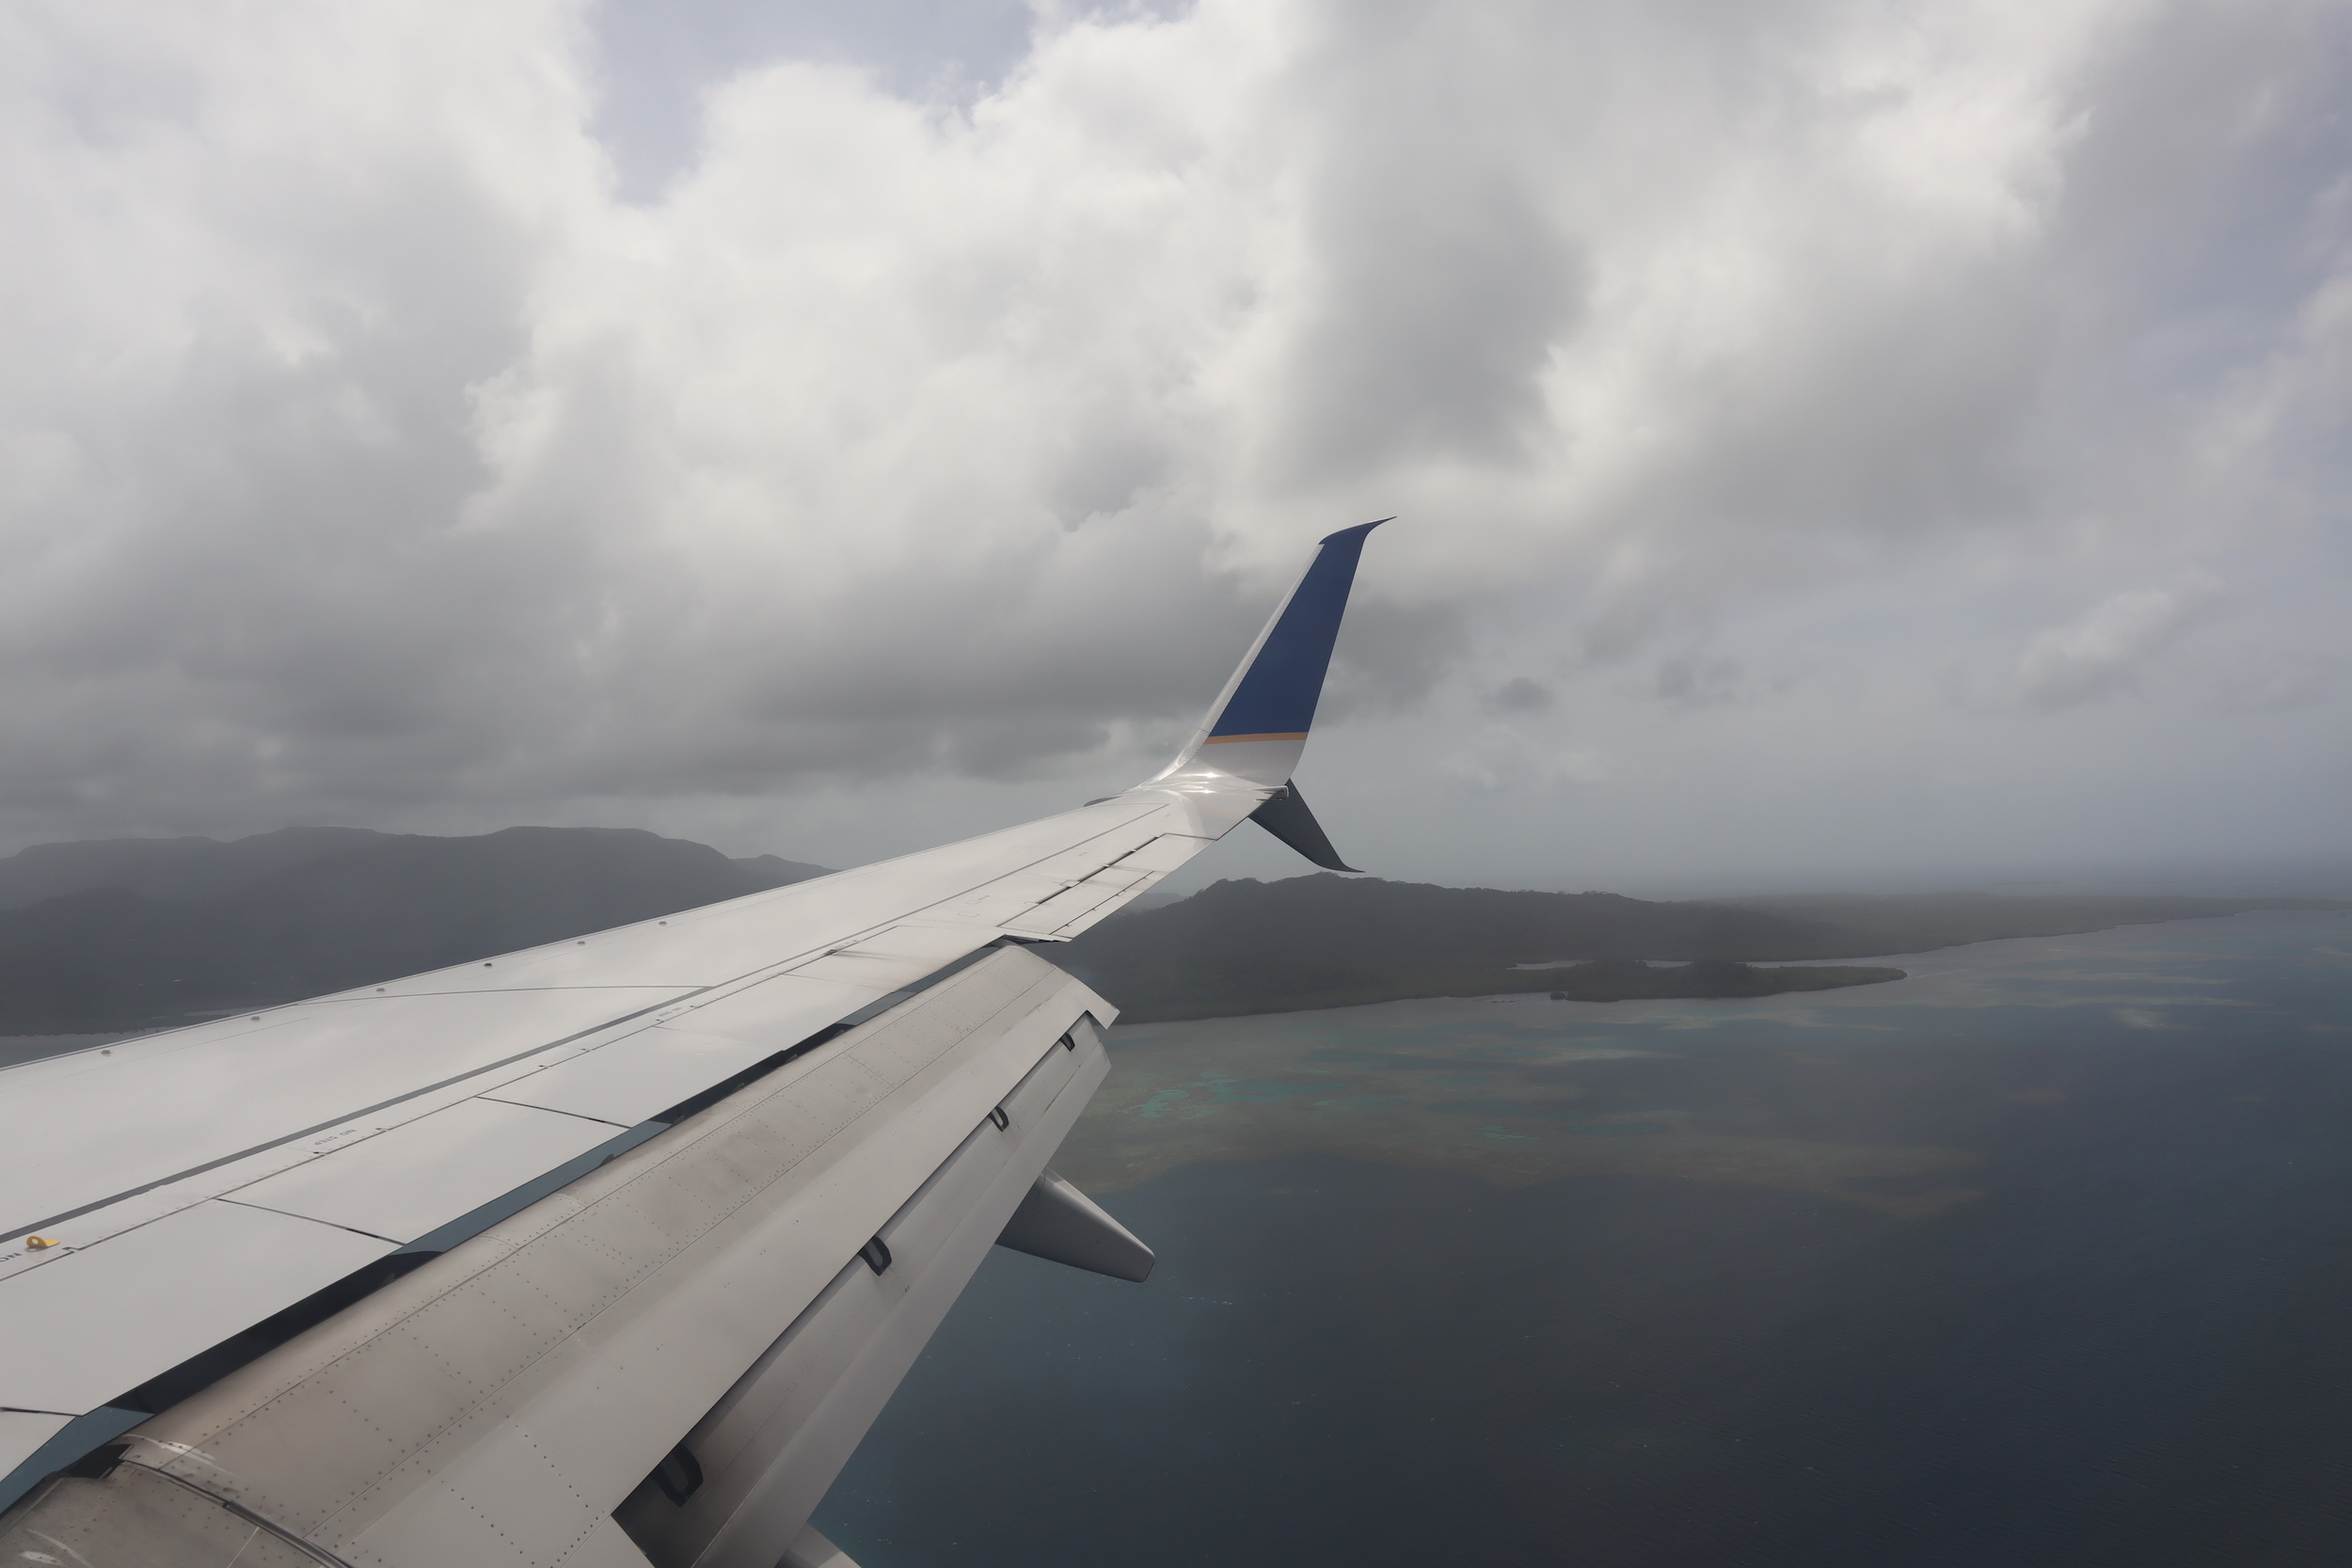 Views on approach to Pohnpei